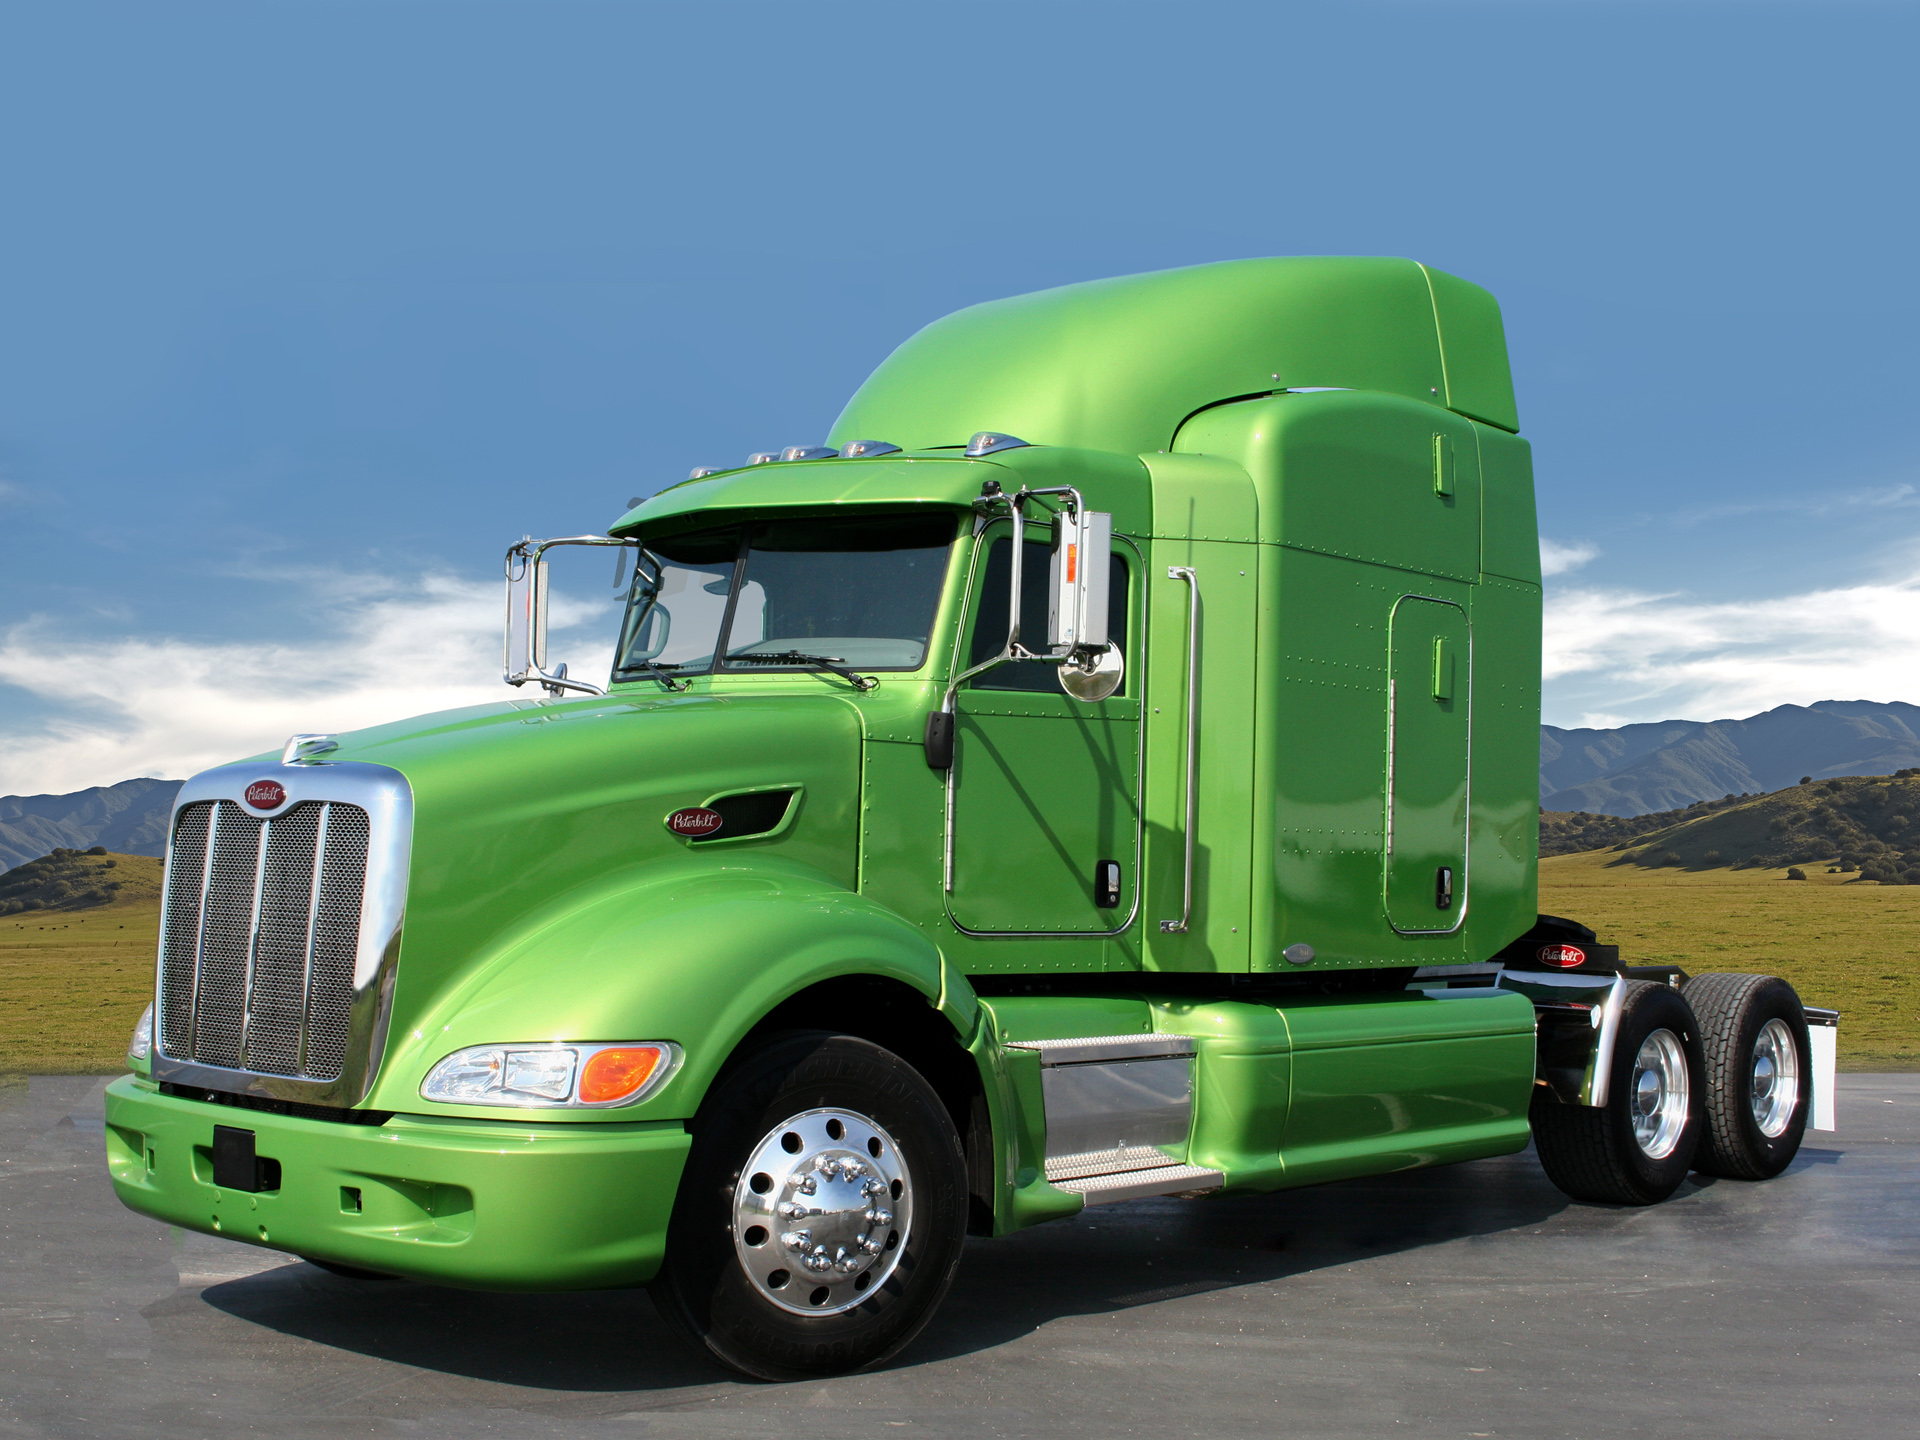 Peterbilt 260GD 5 Ton Tractor Photo Gallery: Photo #10 out of 10 ...